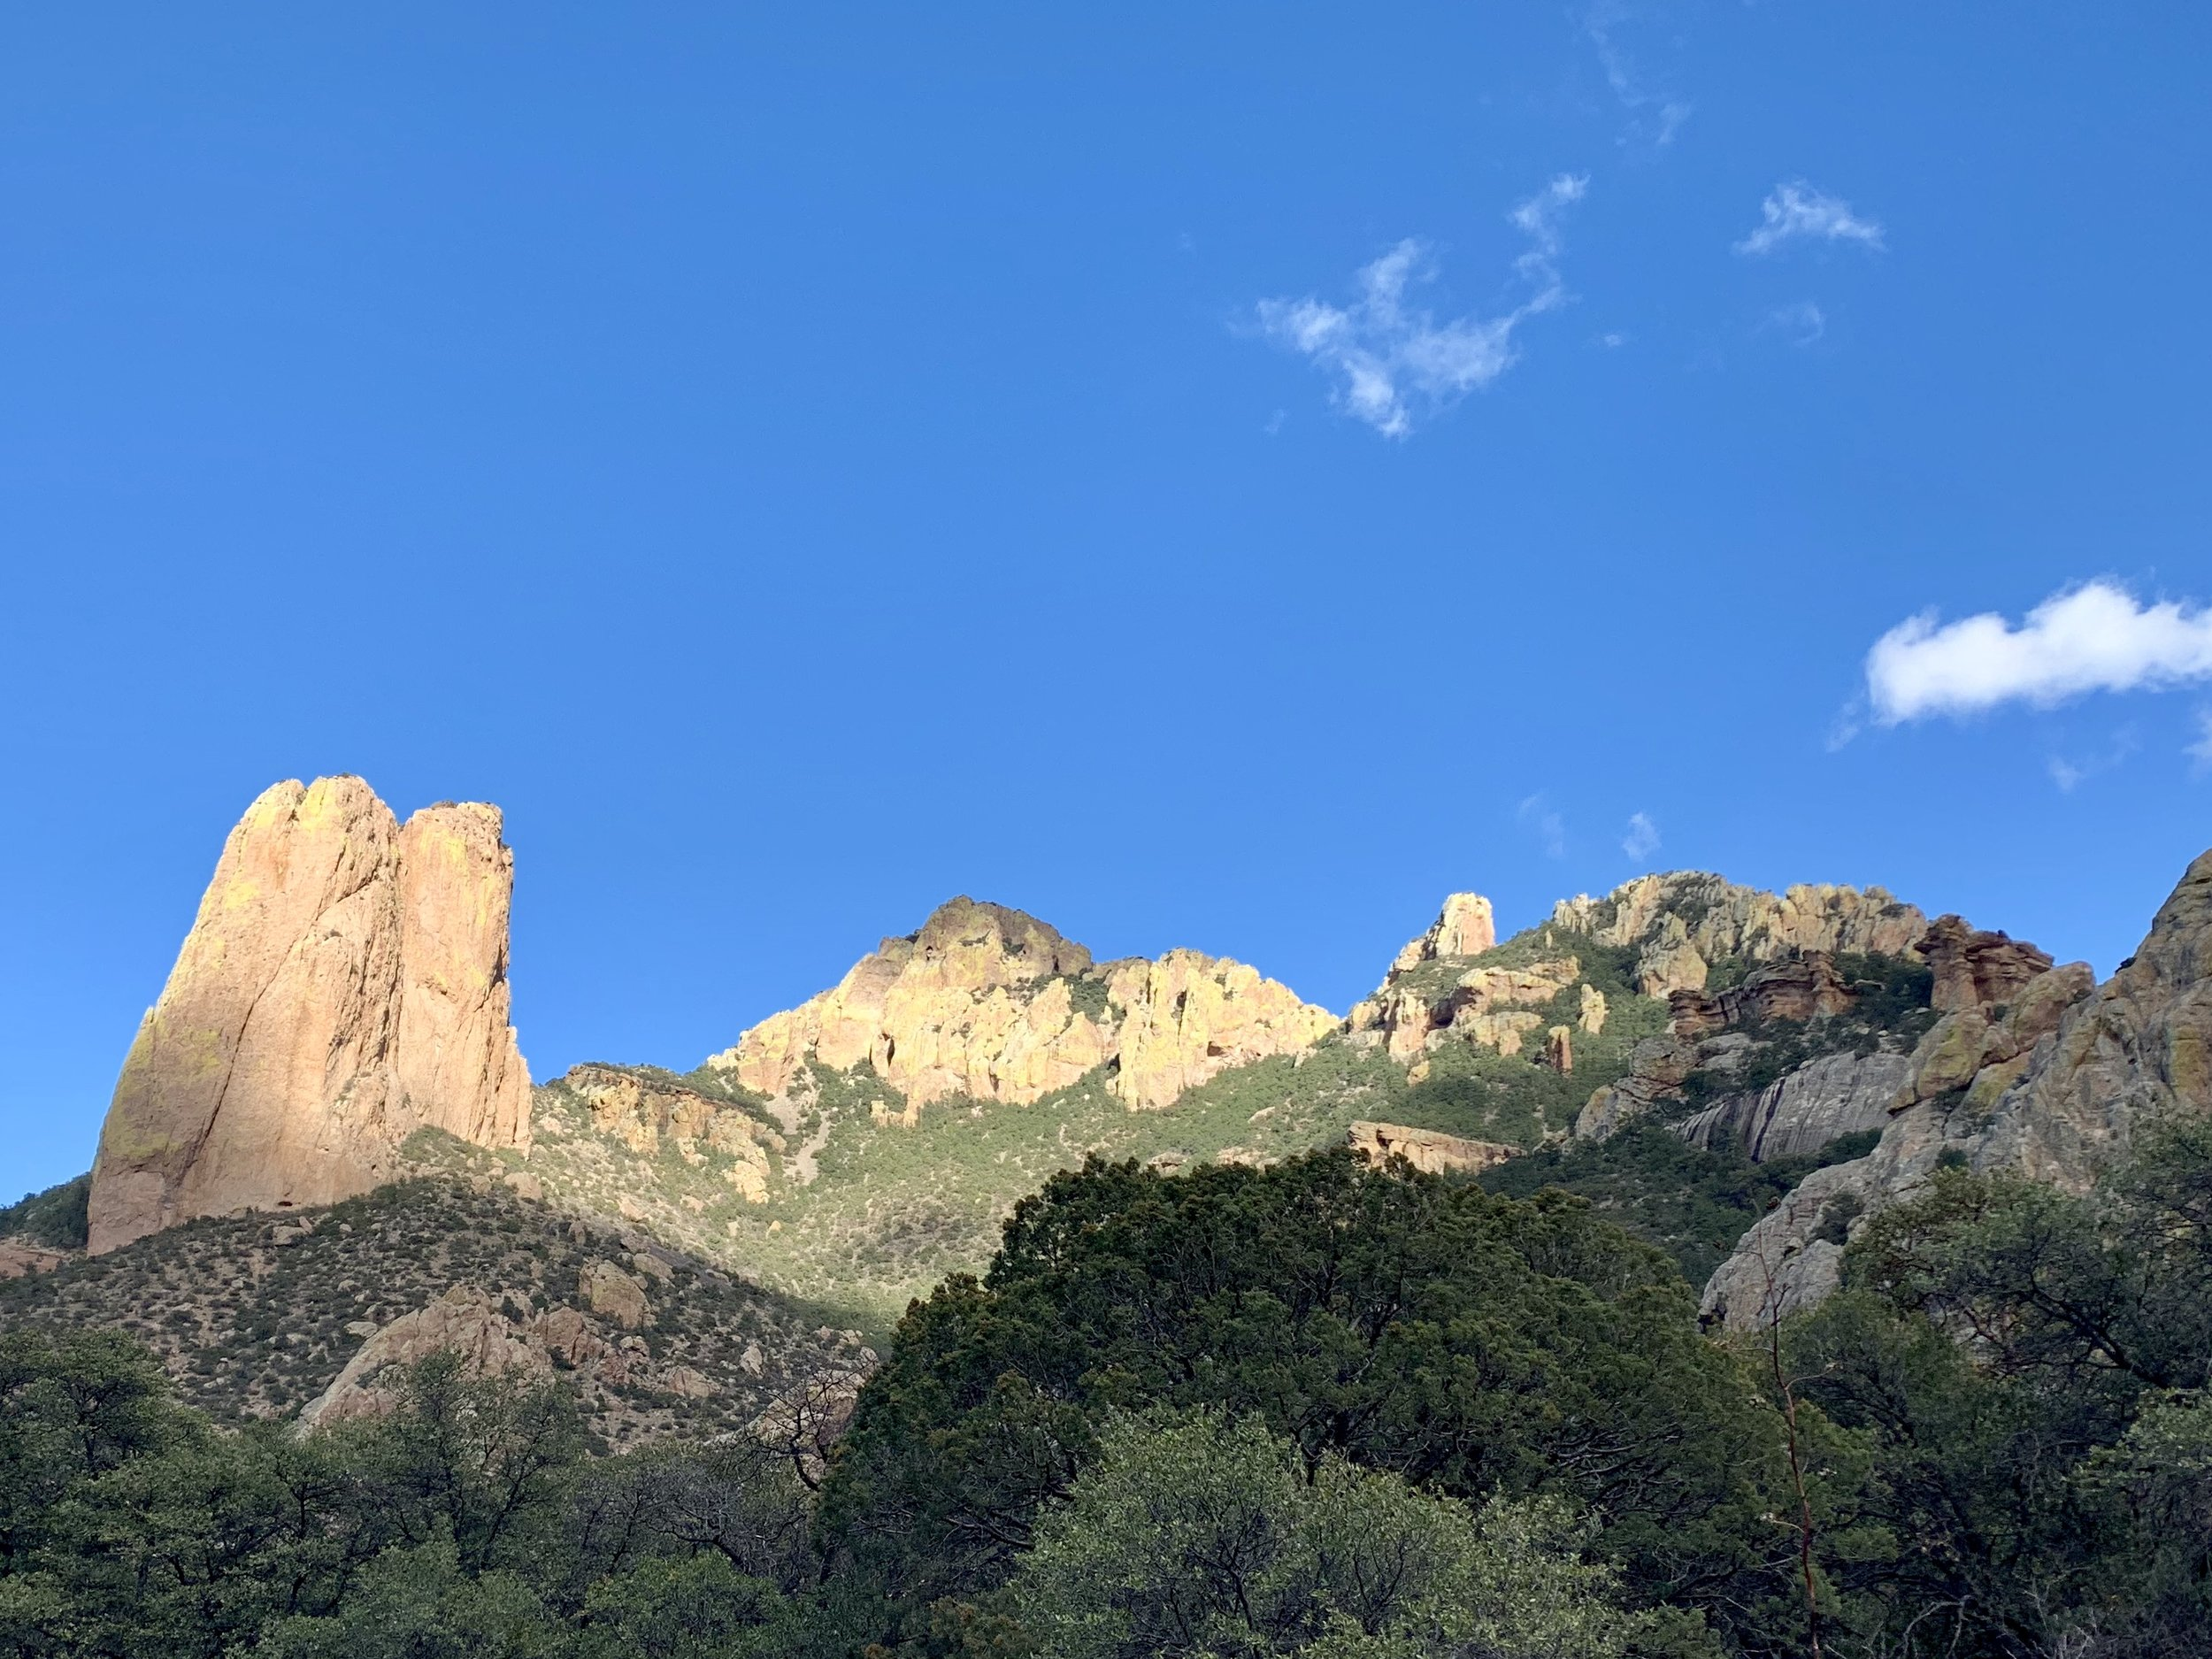 The view from cave Creek Canyon near Portal west of Rodeo.